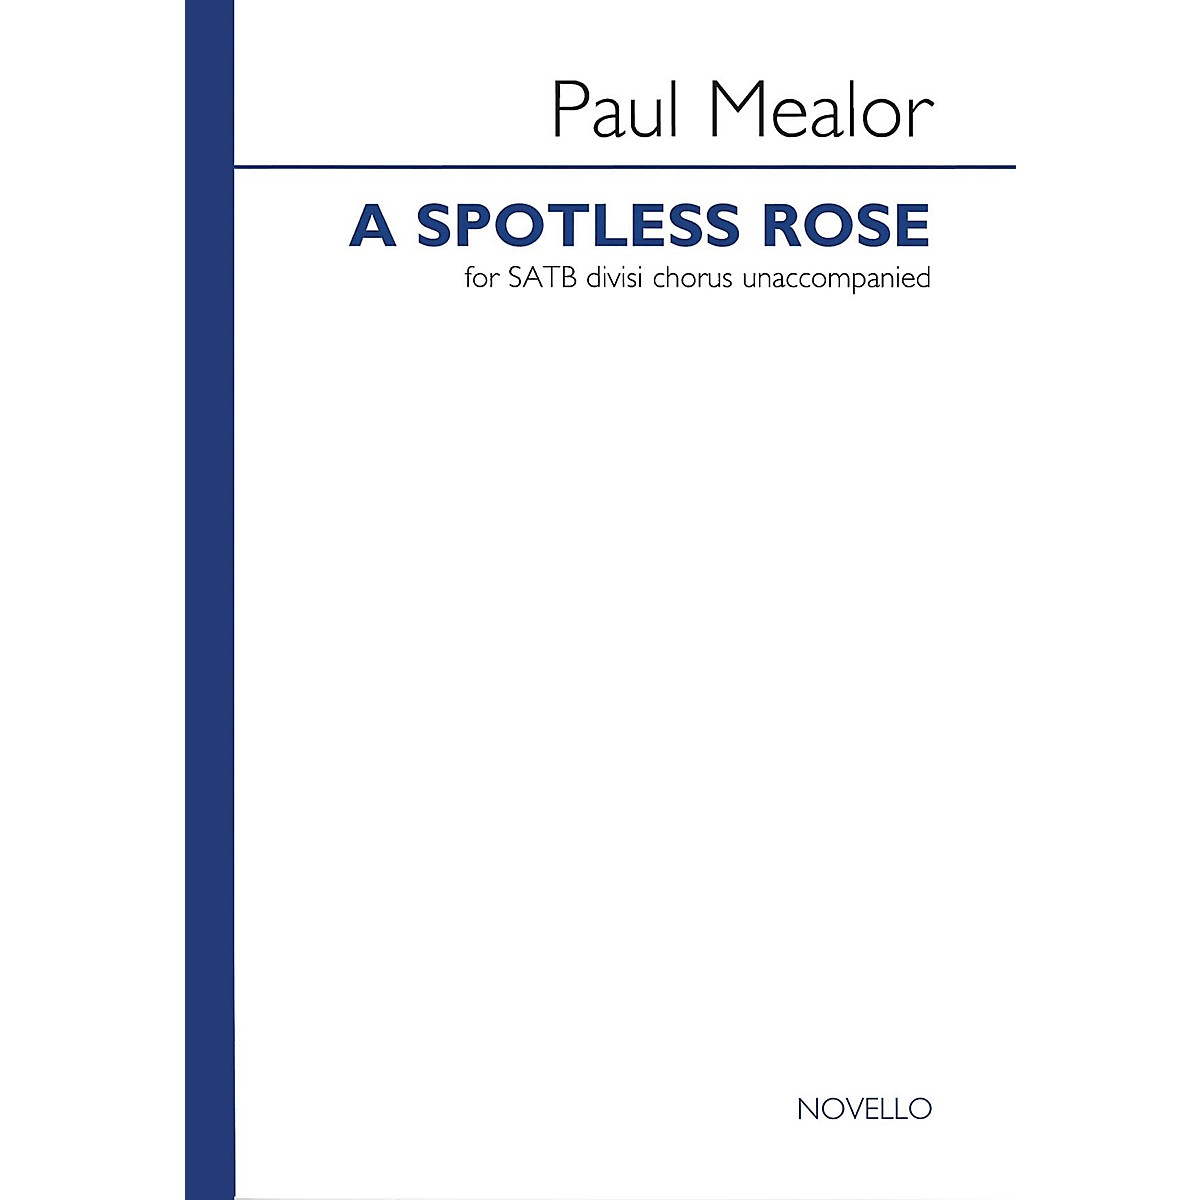 Novello A Spotless Rose SATB Divisi Composed by Paul Mealor